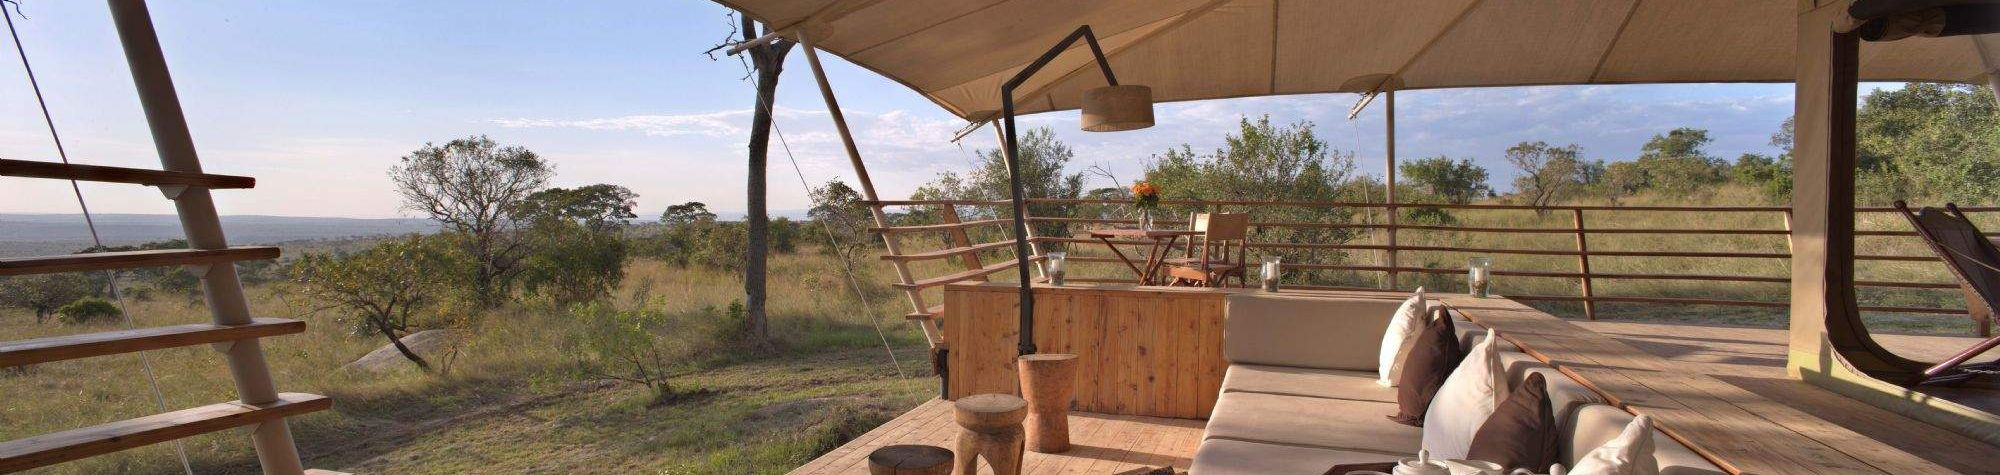 Serengeti Bushtops Lodge